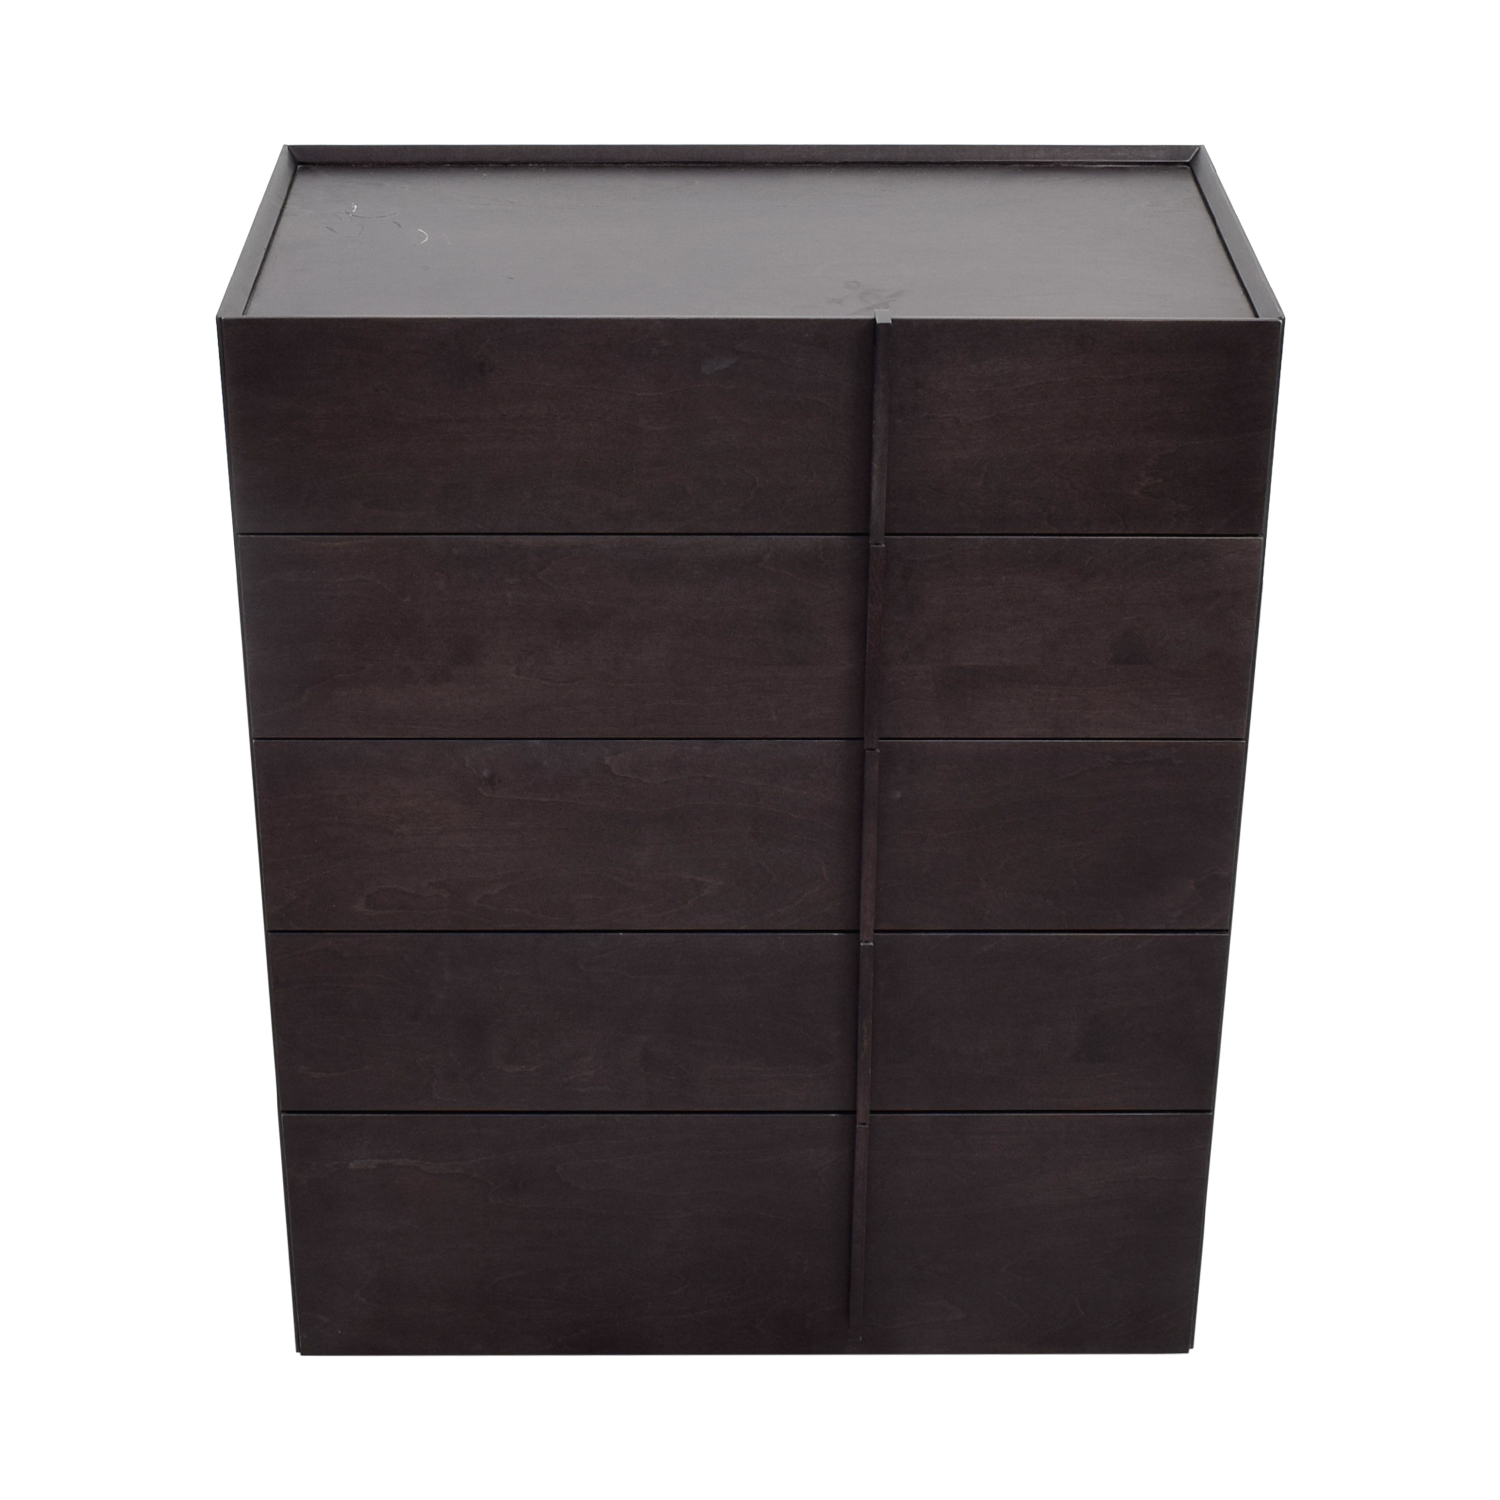 shop ABC Carpet and Home ABC Carpet and Home Tall Dresser online